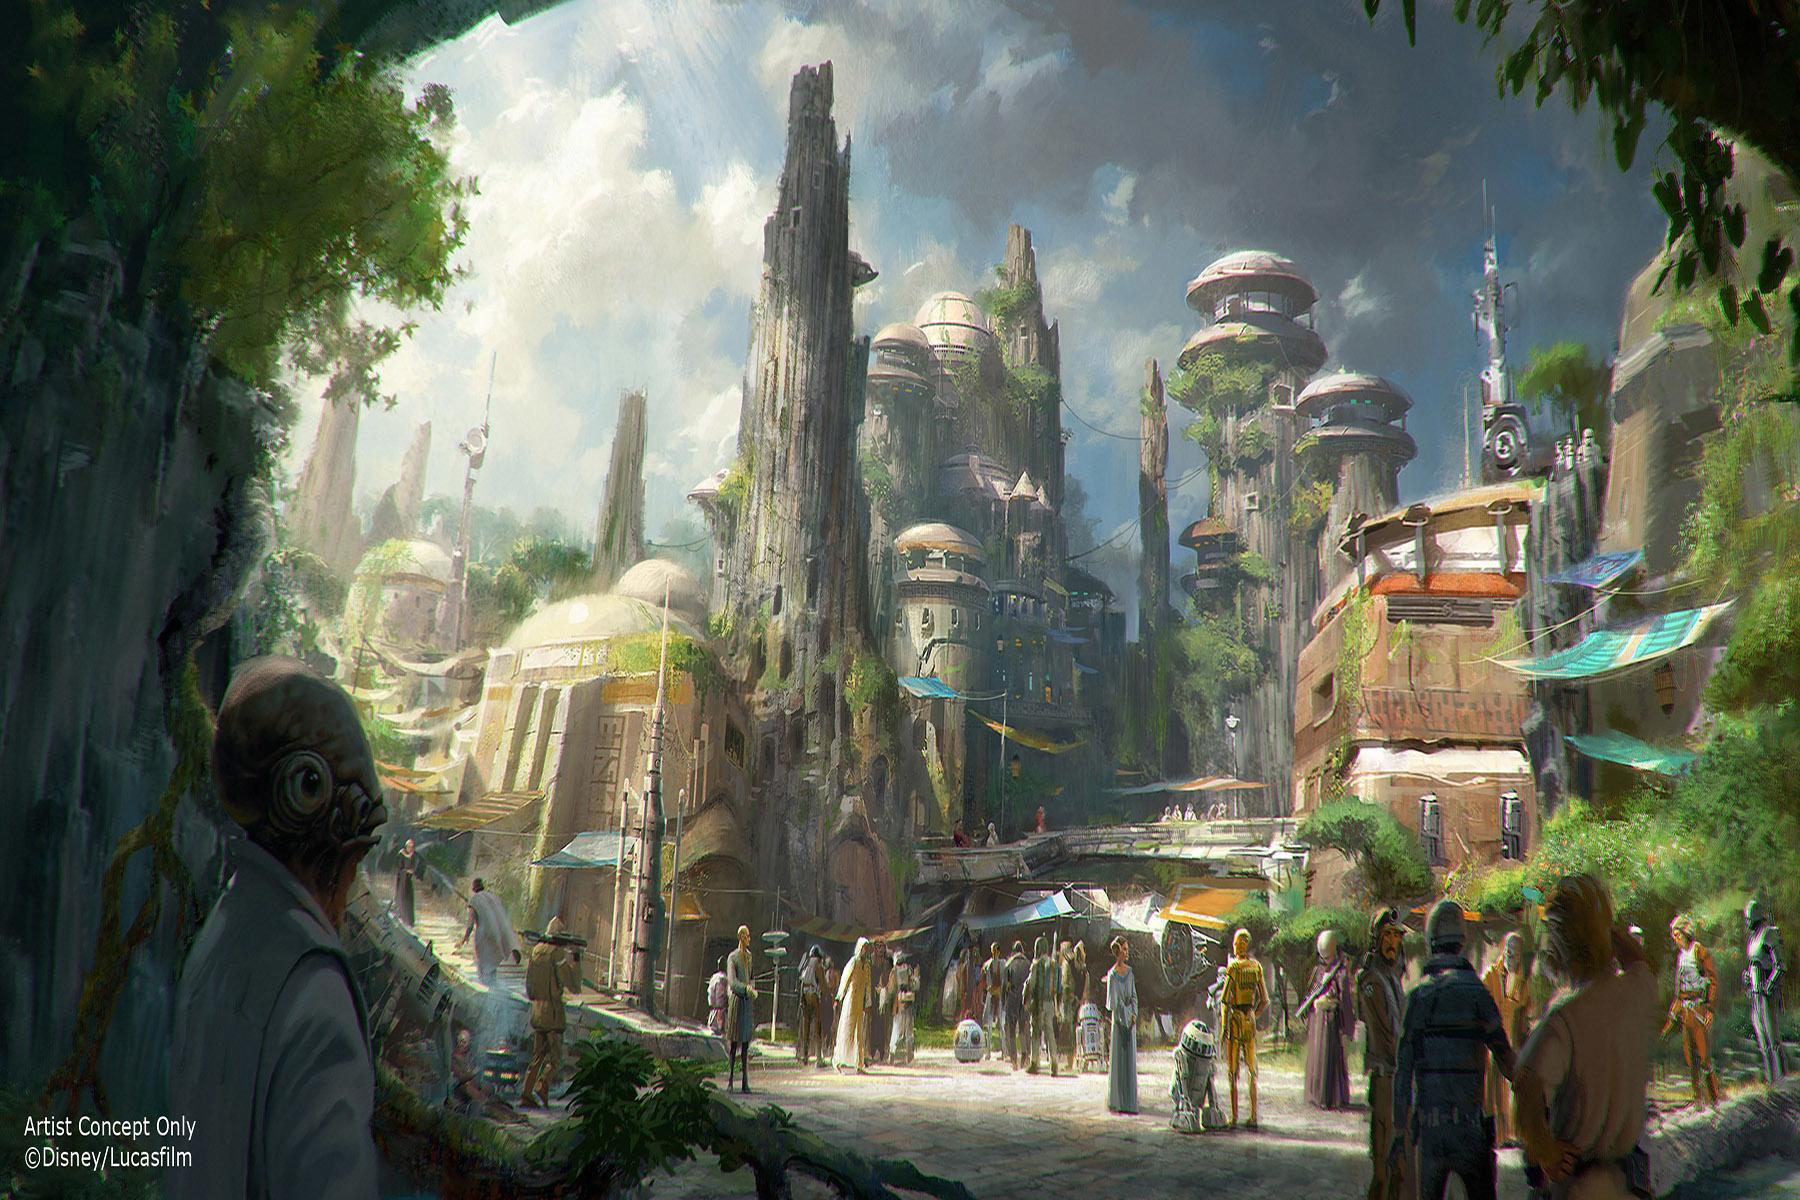 9 Things We Know About Disneyland's Upcoming Star Wars: Galaxy's Edge